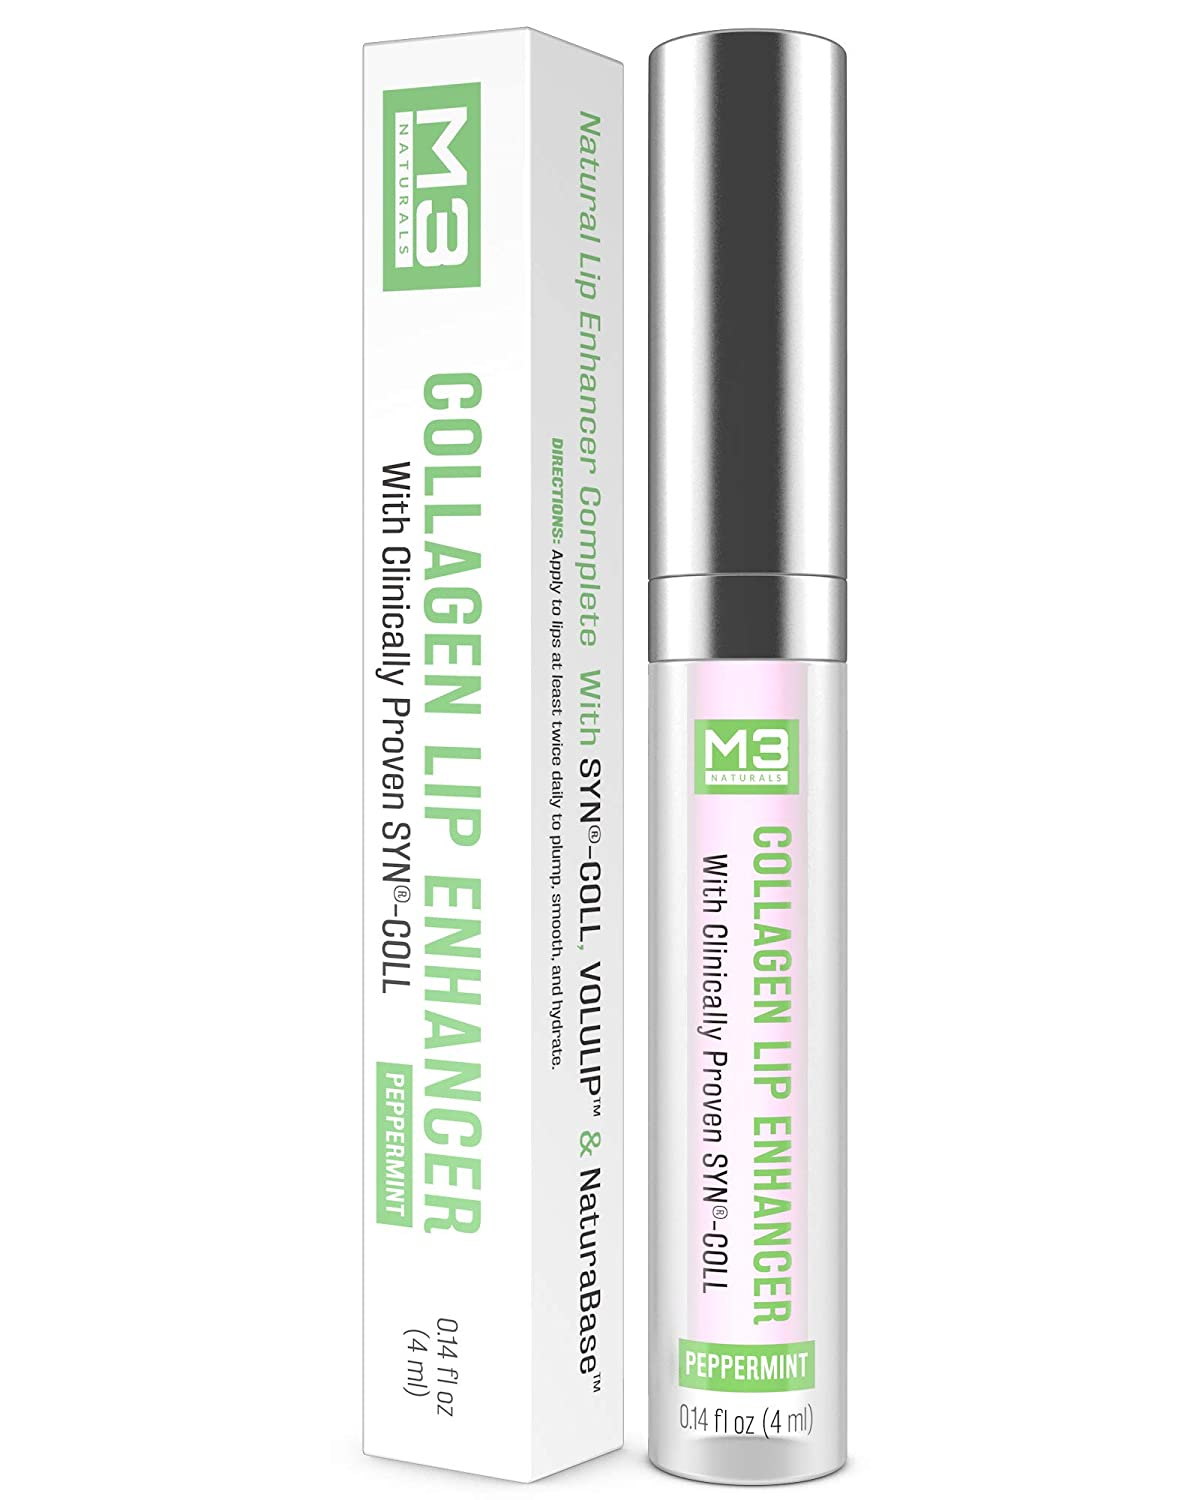 Collagen Lip Enhancer - M3 Naturals